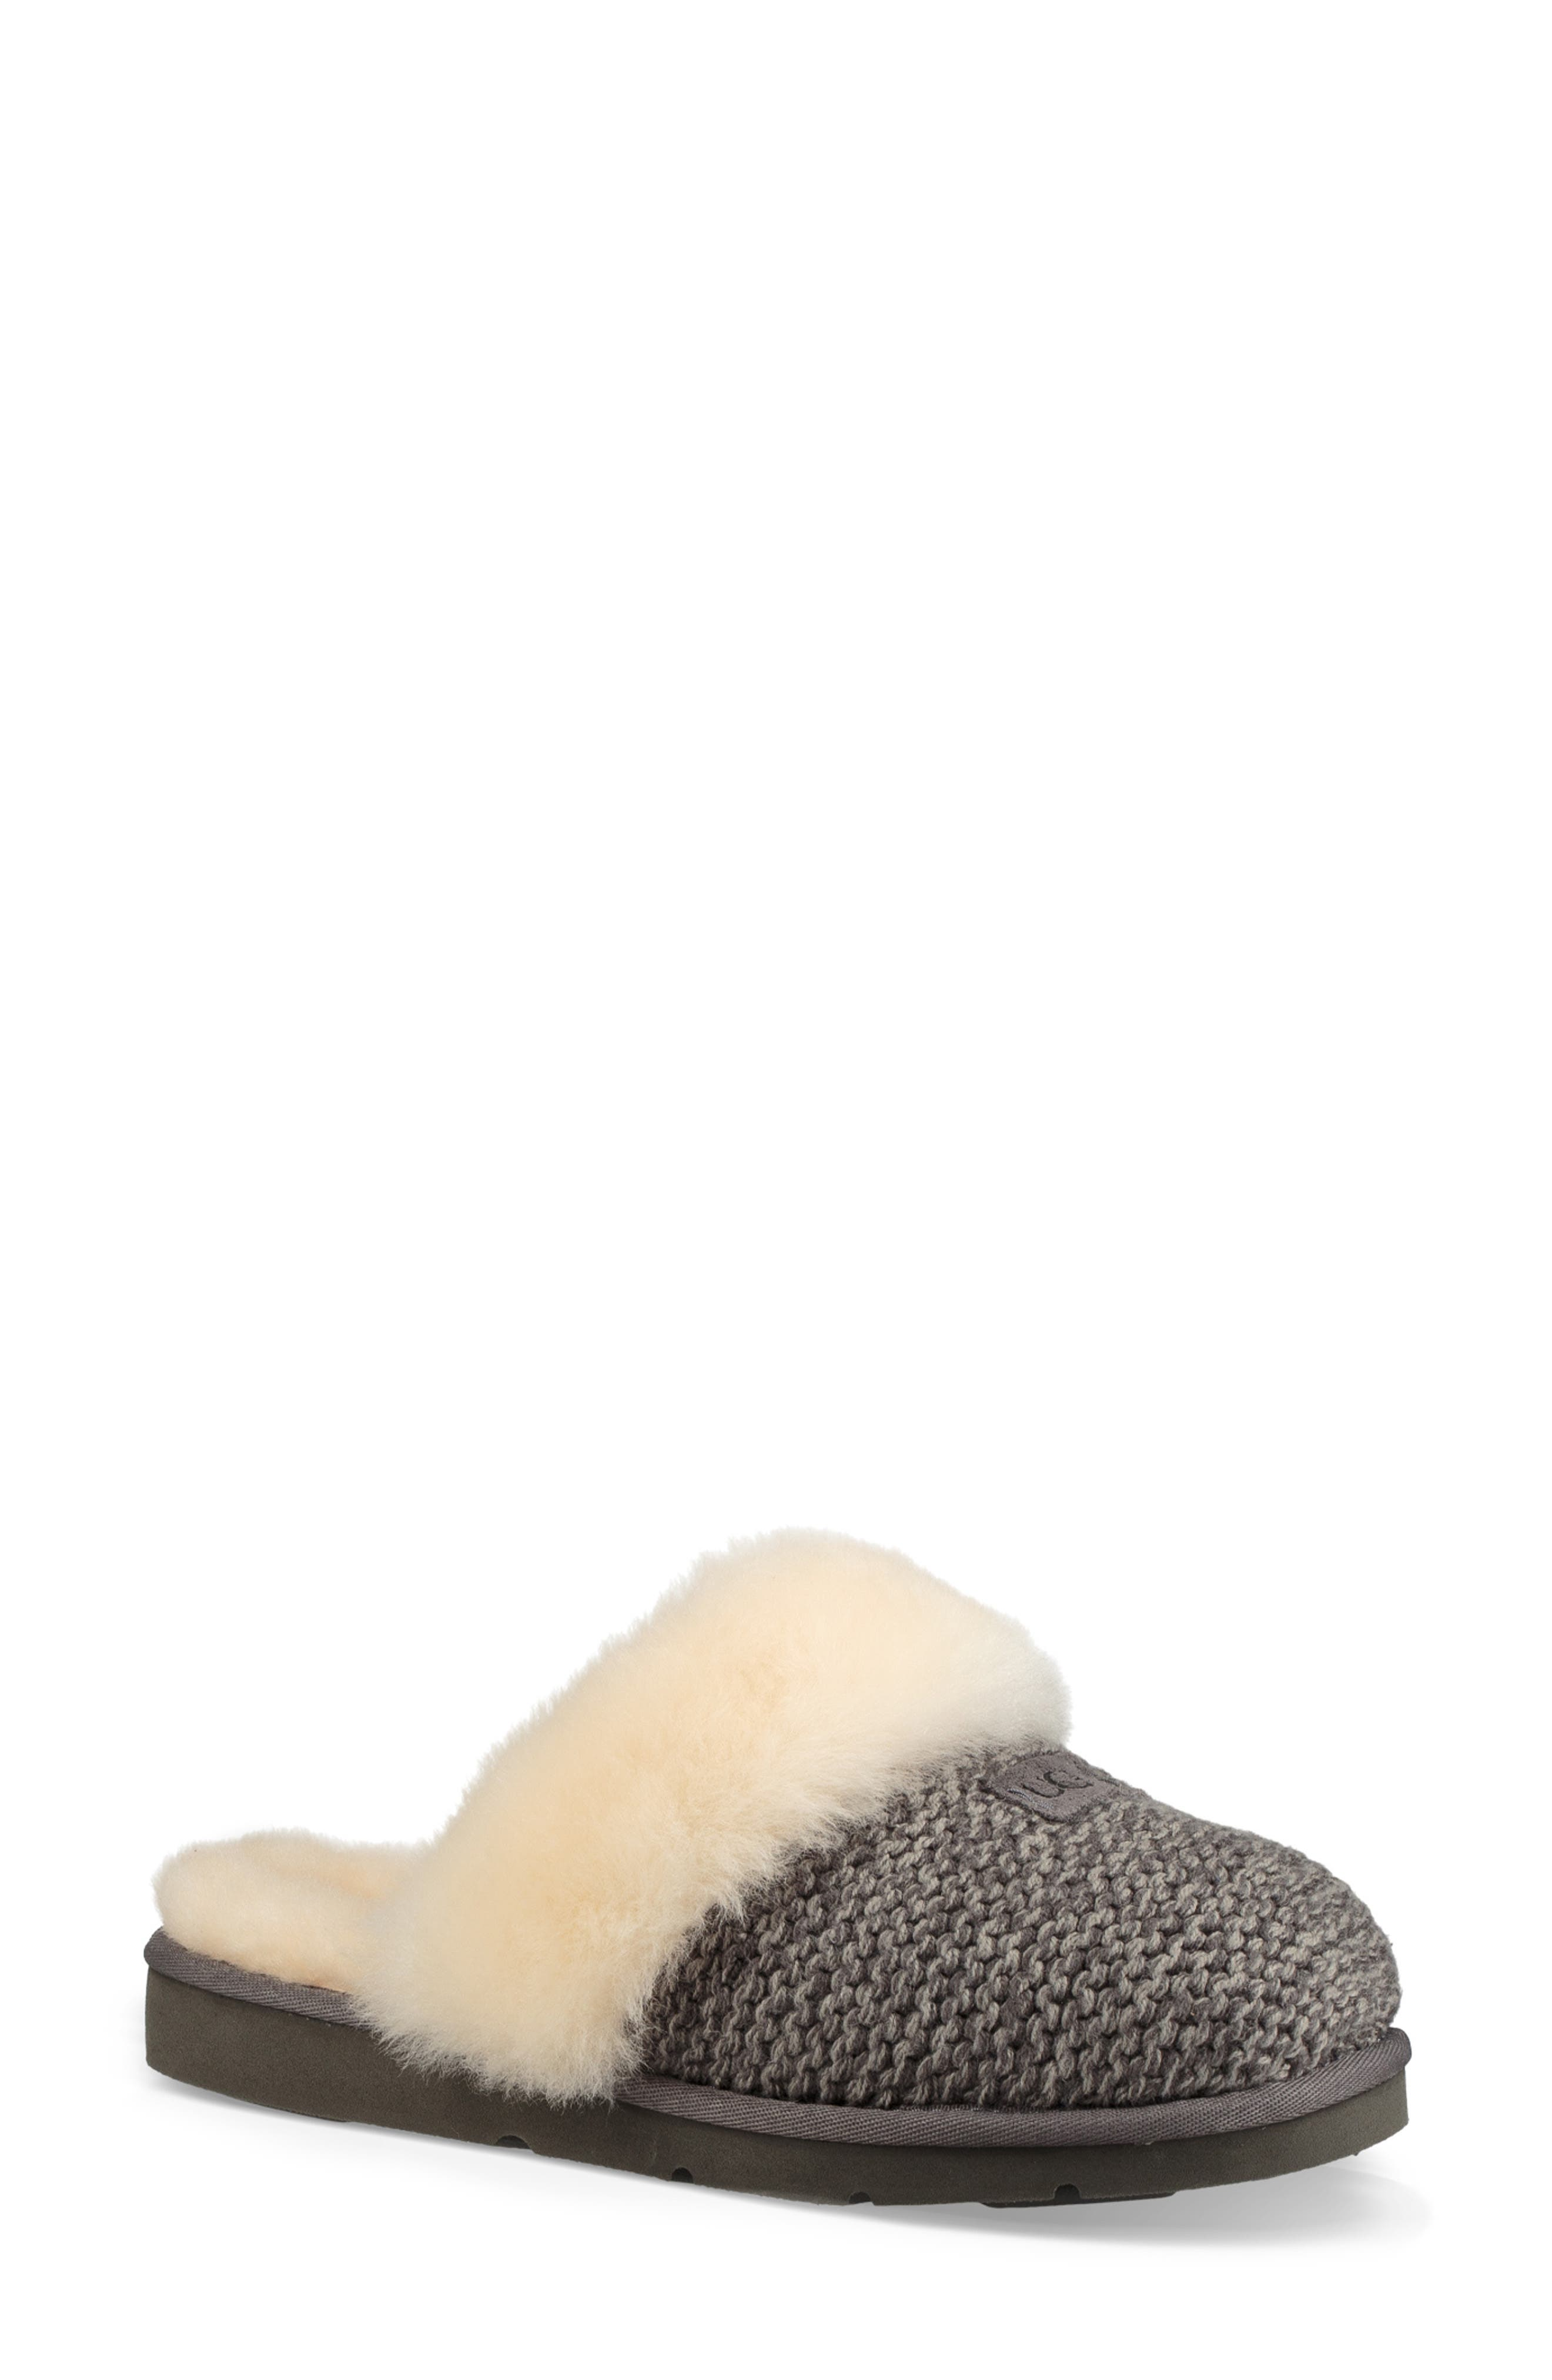 Cozy Knit Genuine Shearling Slipper,                             Main thumbnail 1, color,                             CHARCOAL